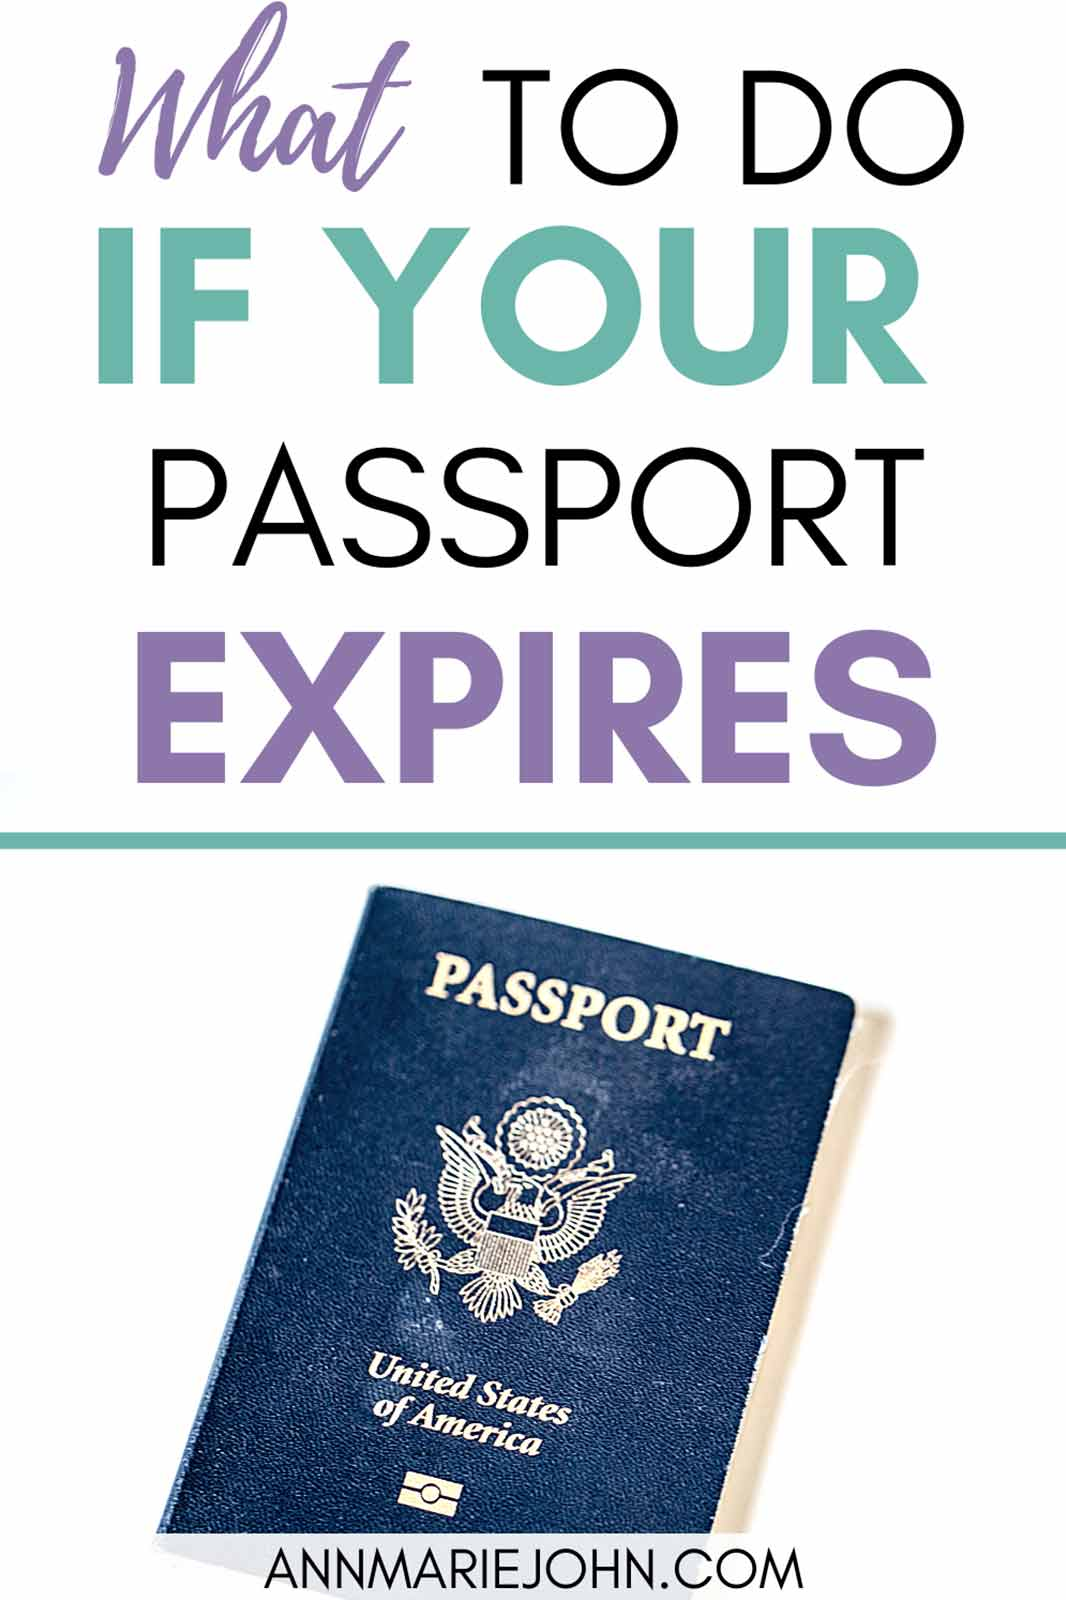 What to Do if Your Passport Expires